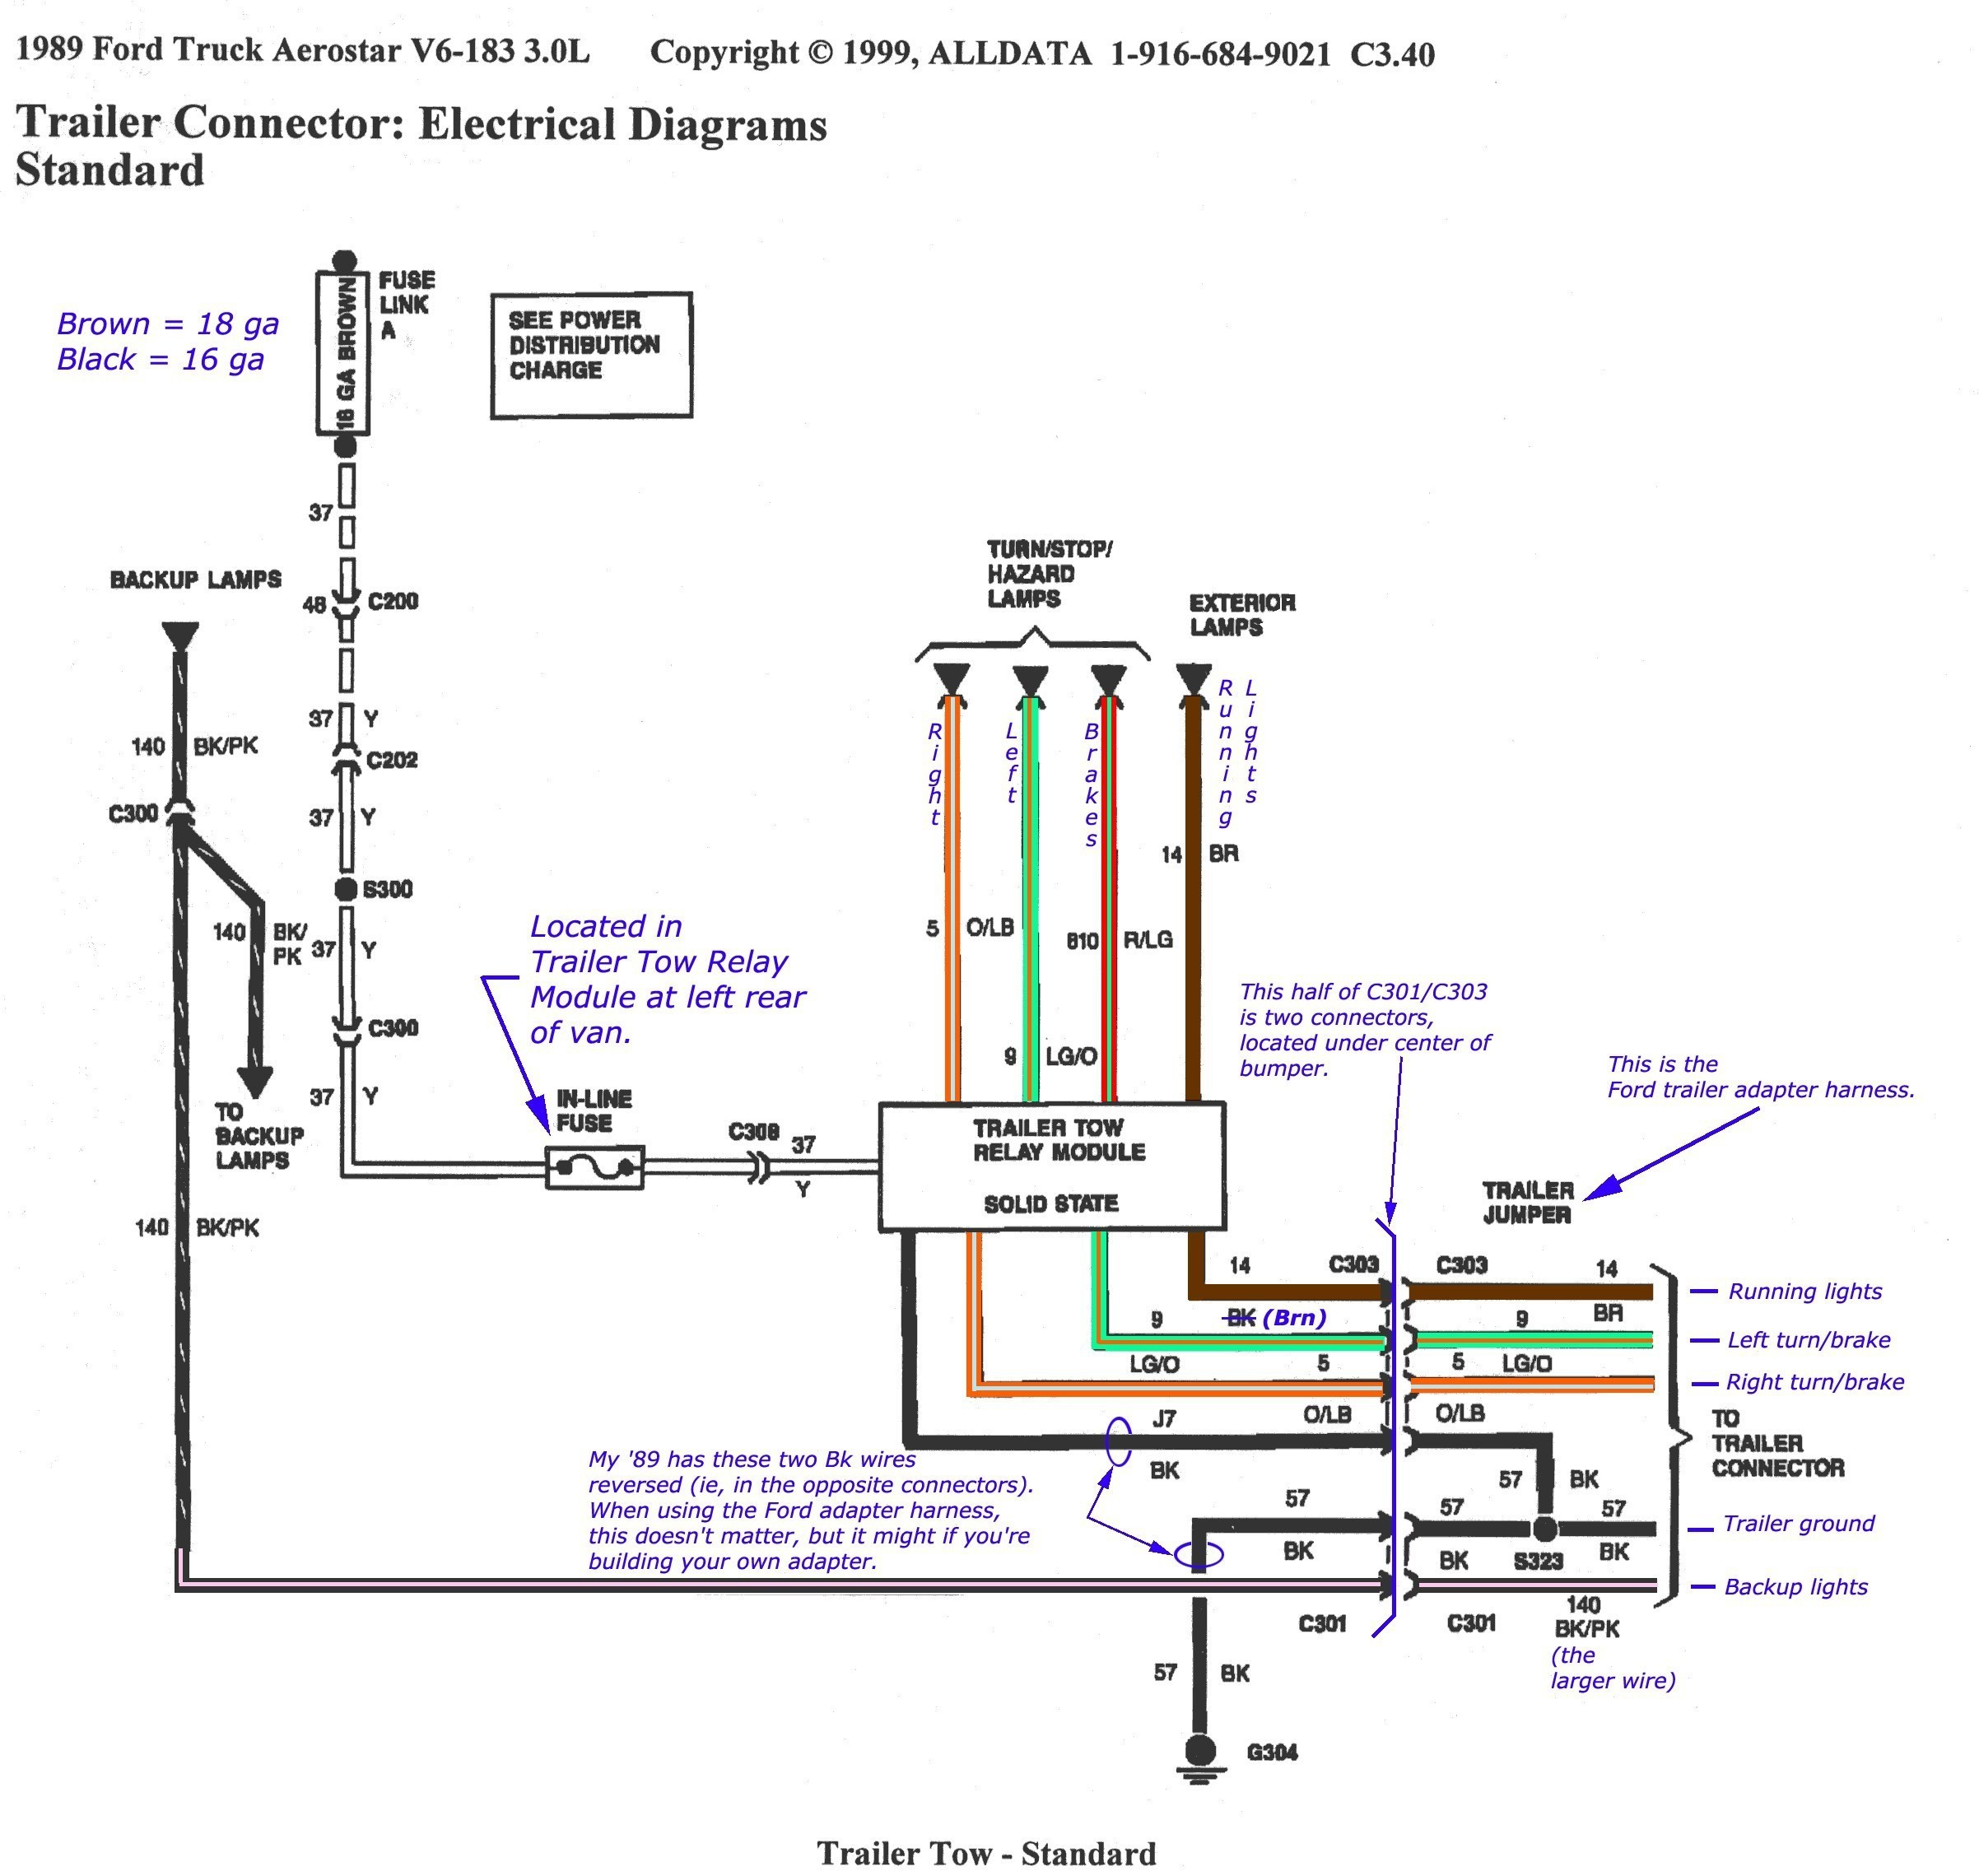 3 Wire Tail Light Wiring Diagram Lovely Wiring Diagram Big Tex Trailer New Typical Vehicle Trailer